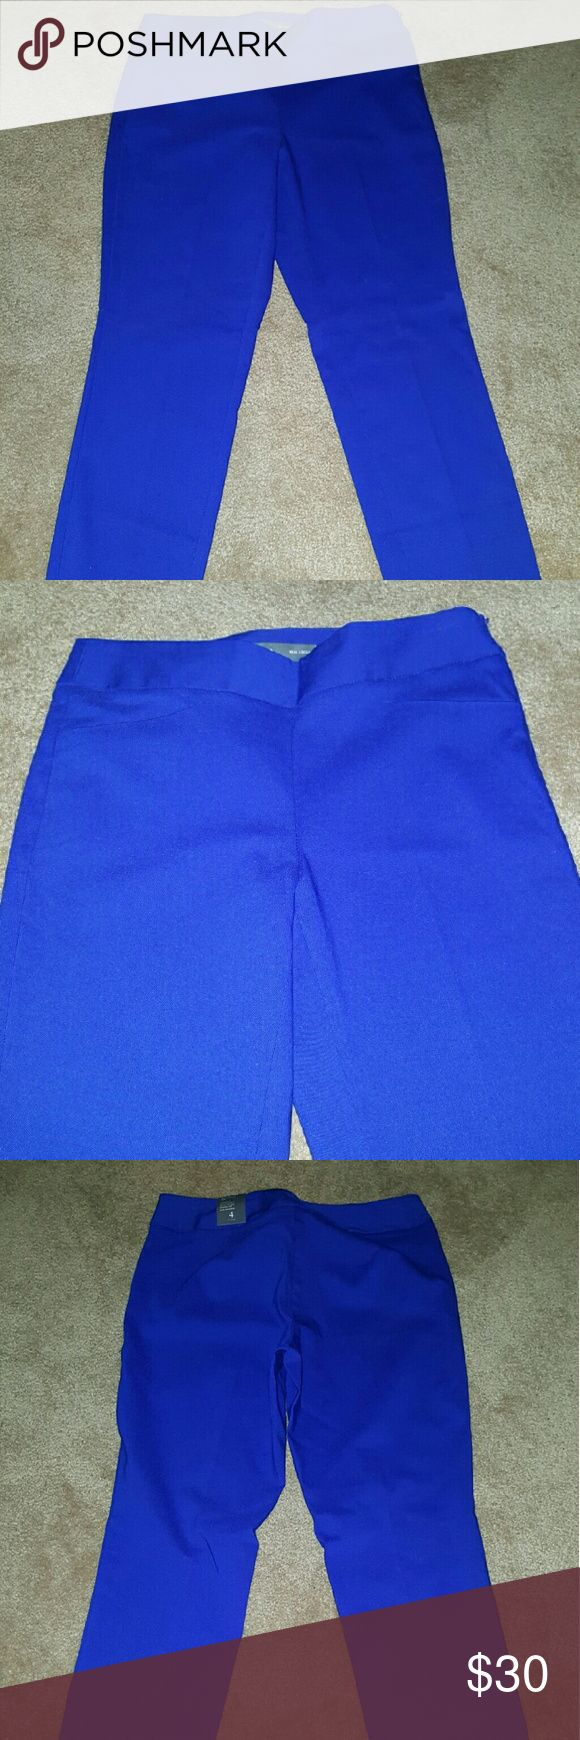 Royal Blue Limited Pants This item is from the brand The Limited.It is a size 4,new,never worn with tags.This item is from the ideal stretch collection. The Limited Pants Ankle & Cropped